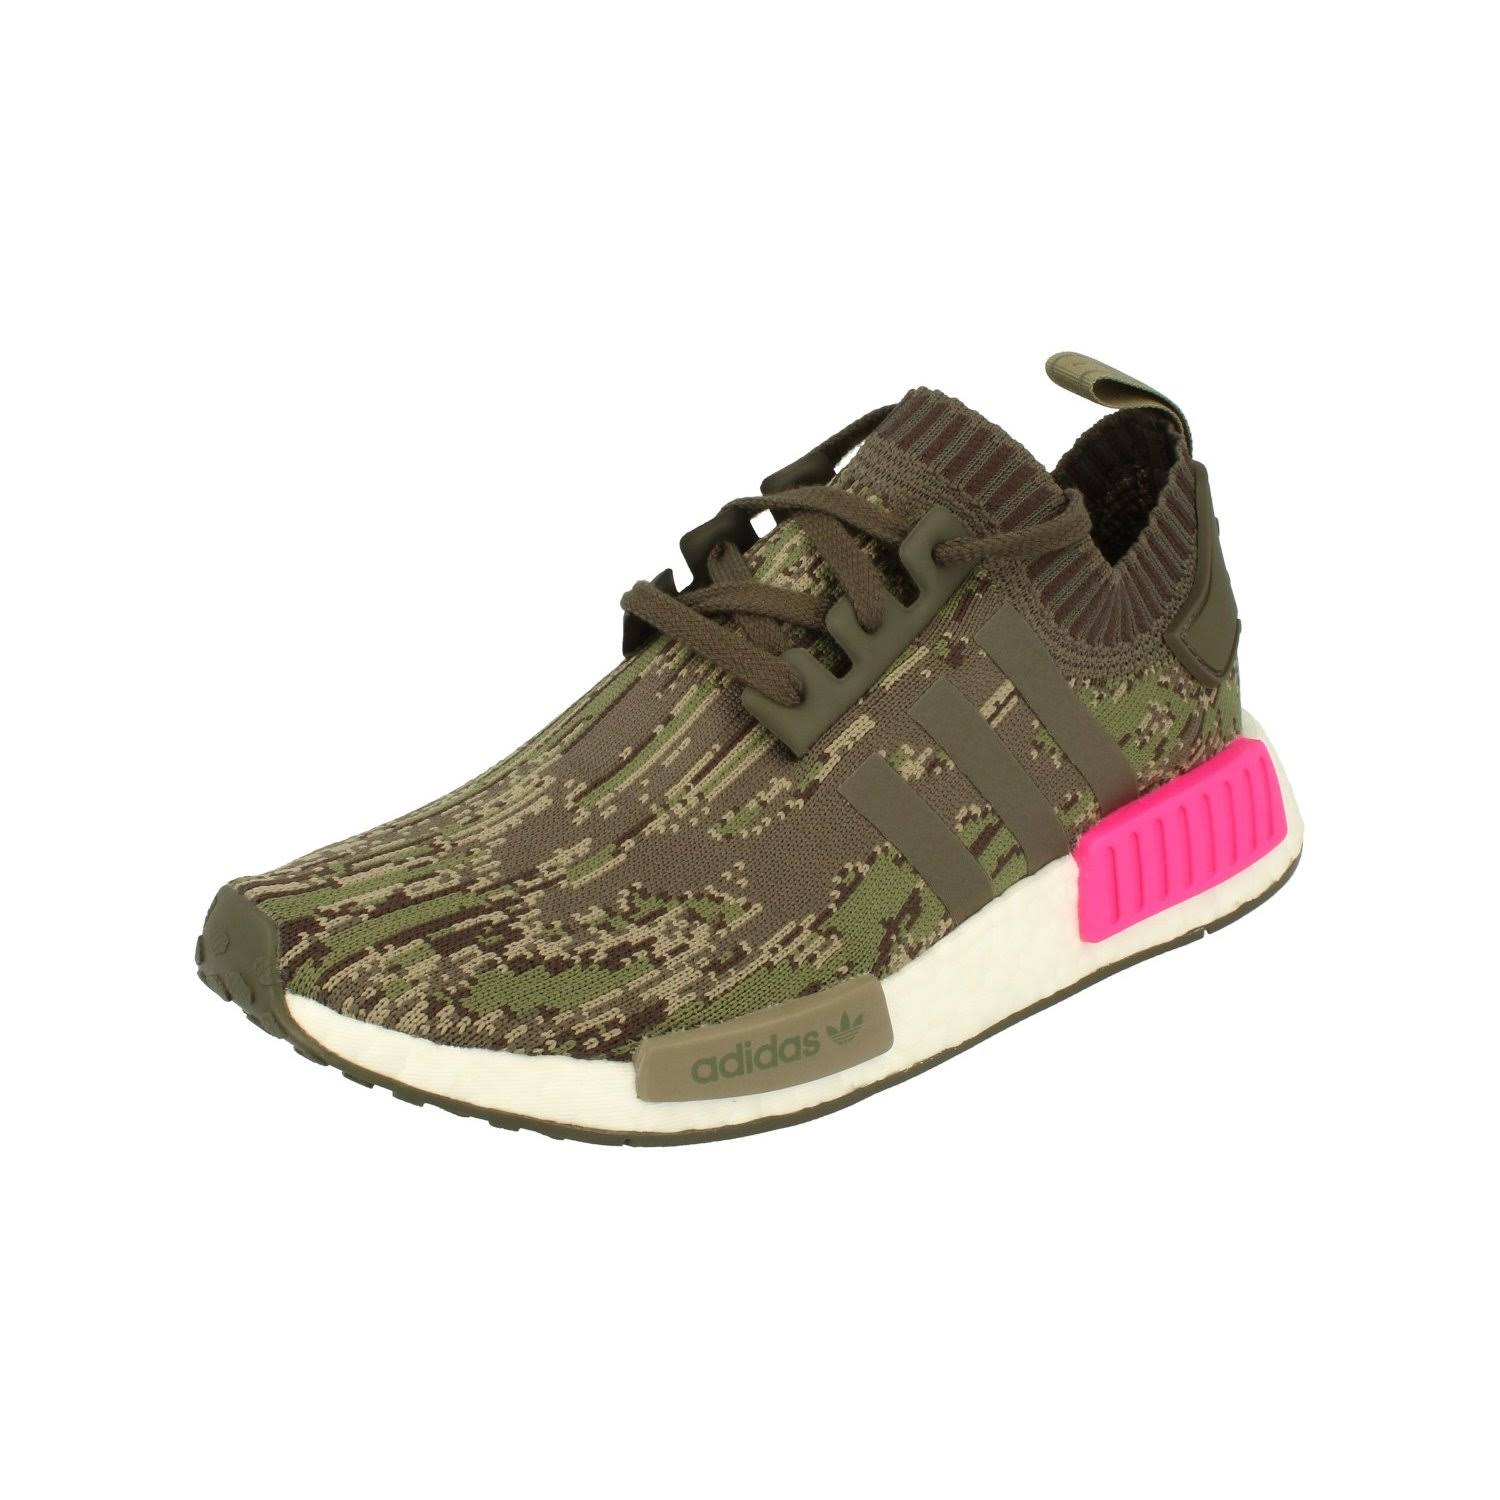 (4 (Adults')) Adidas Originals Nmd_R1 Pk Mens Running Trainers Sneakers Shoes Prime Knit